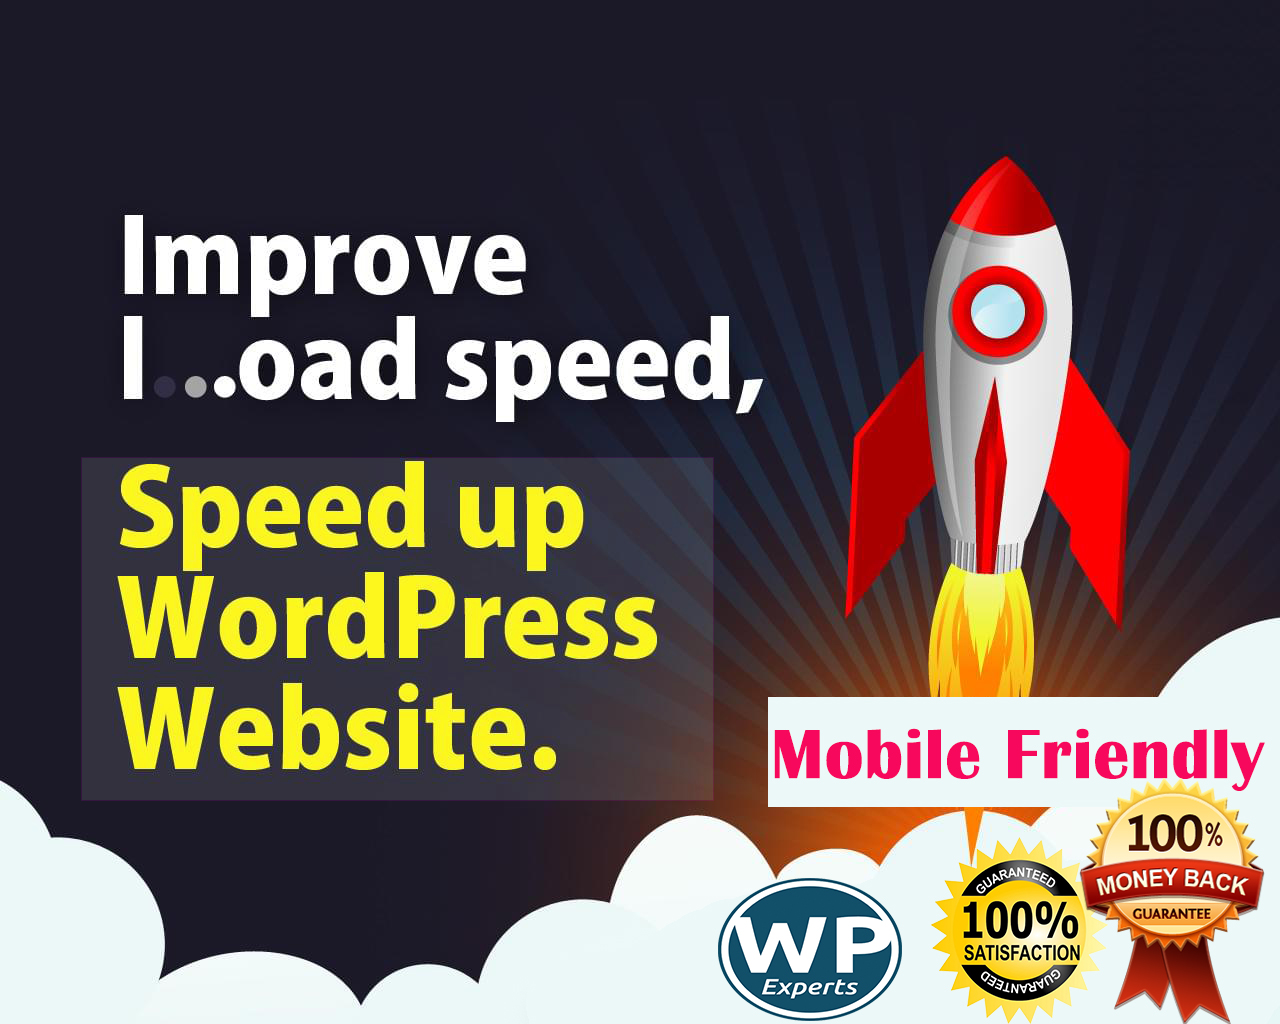 I will do mobile friendly,  speedy wordpress site for you